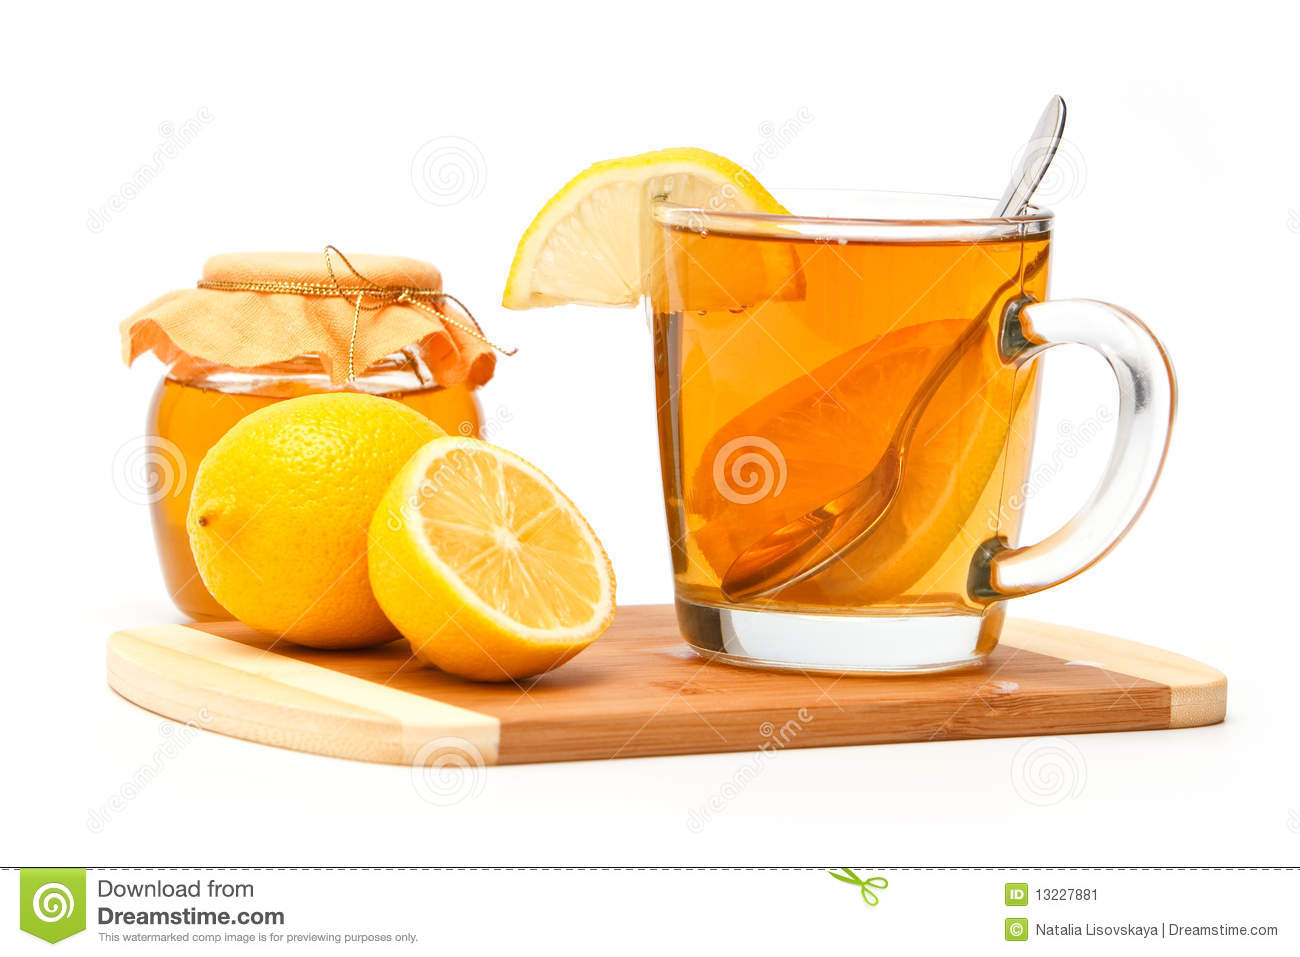 Tea With Lemon And Honey Stock Image - Image: 13227881